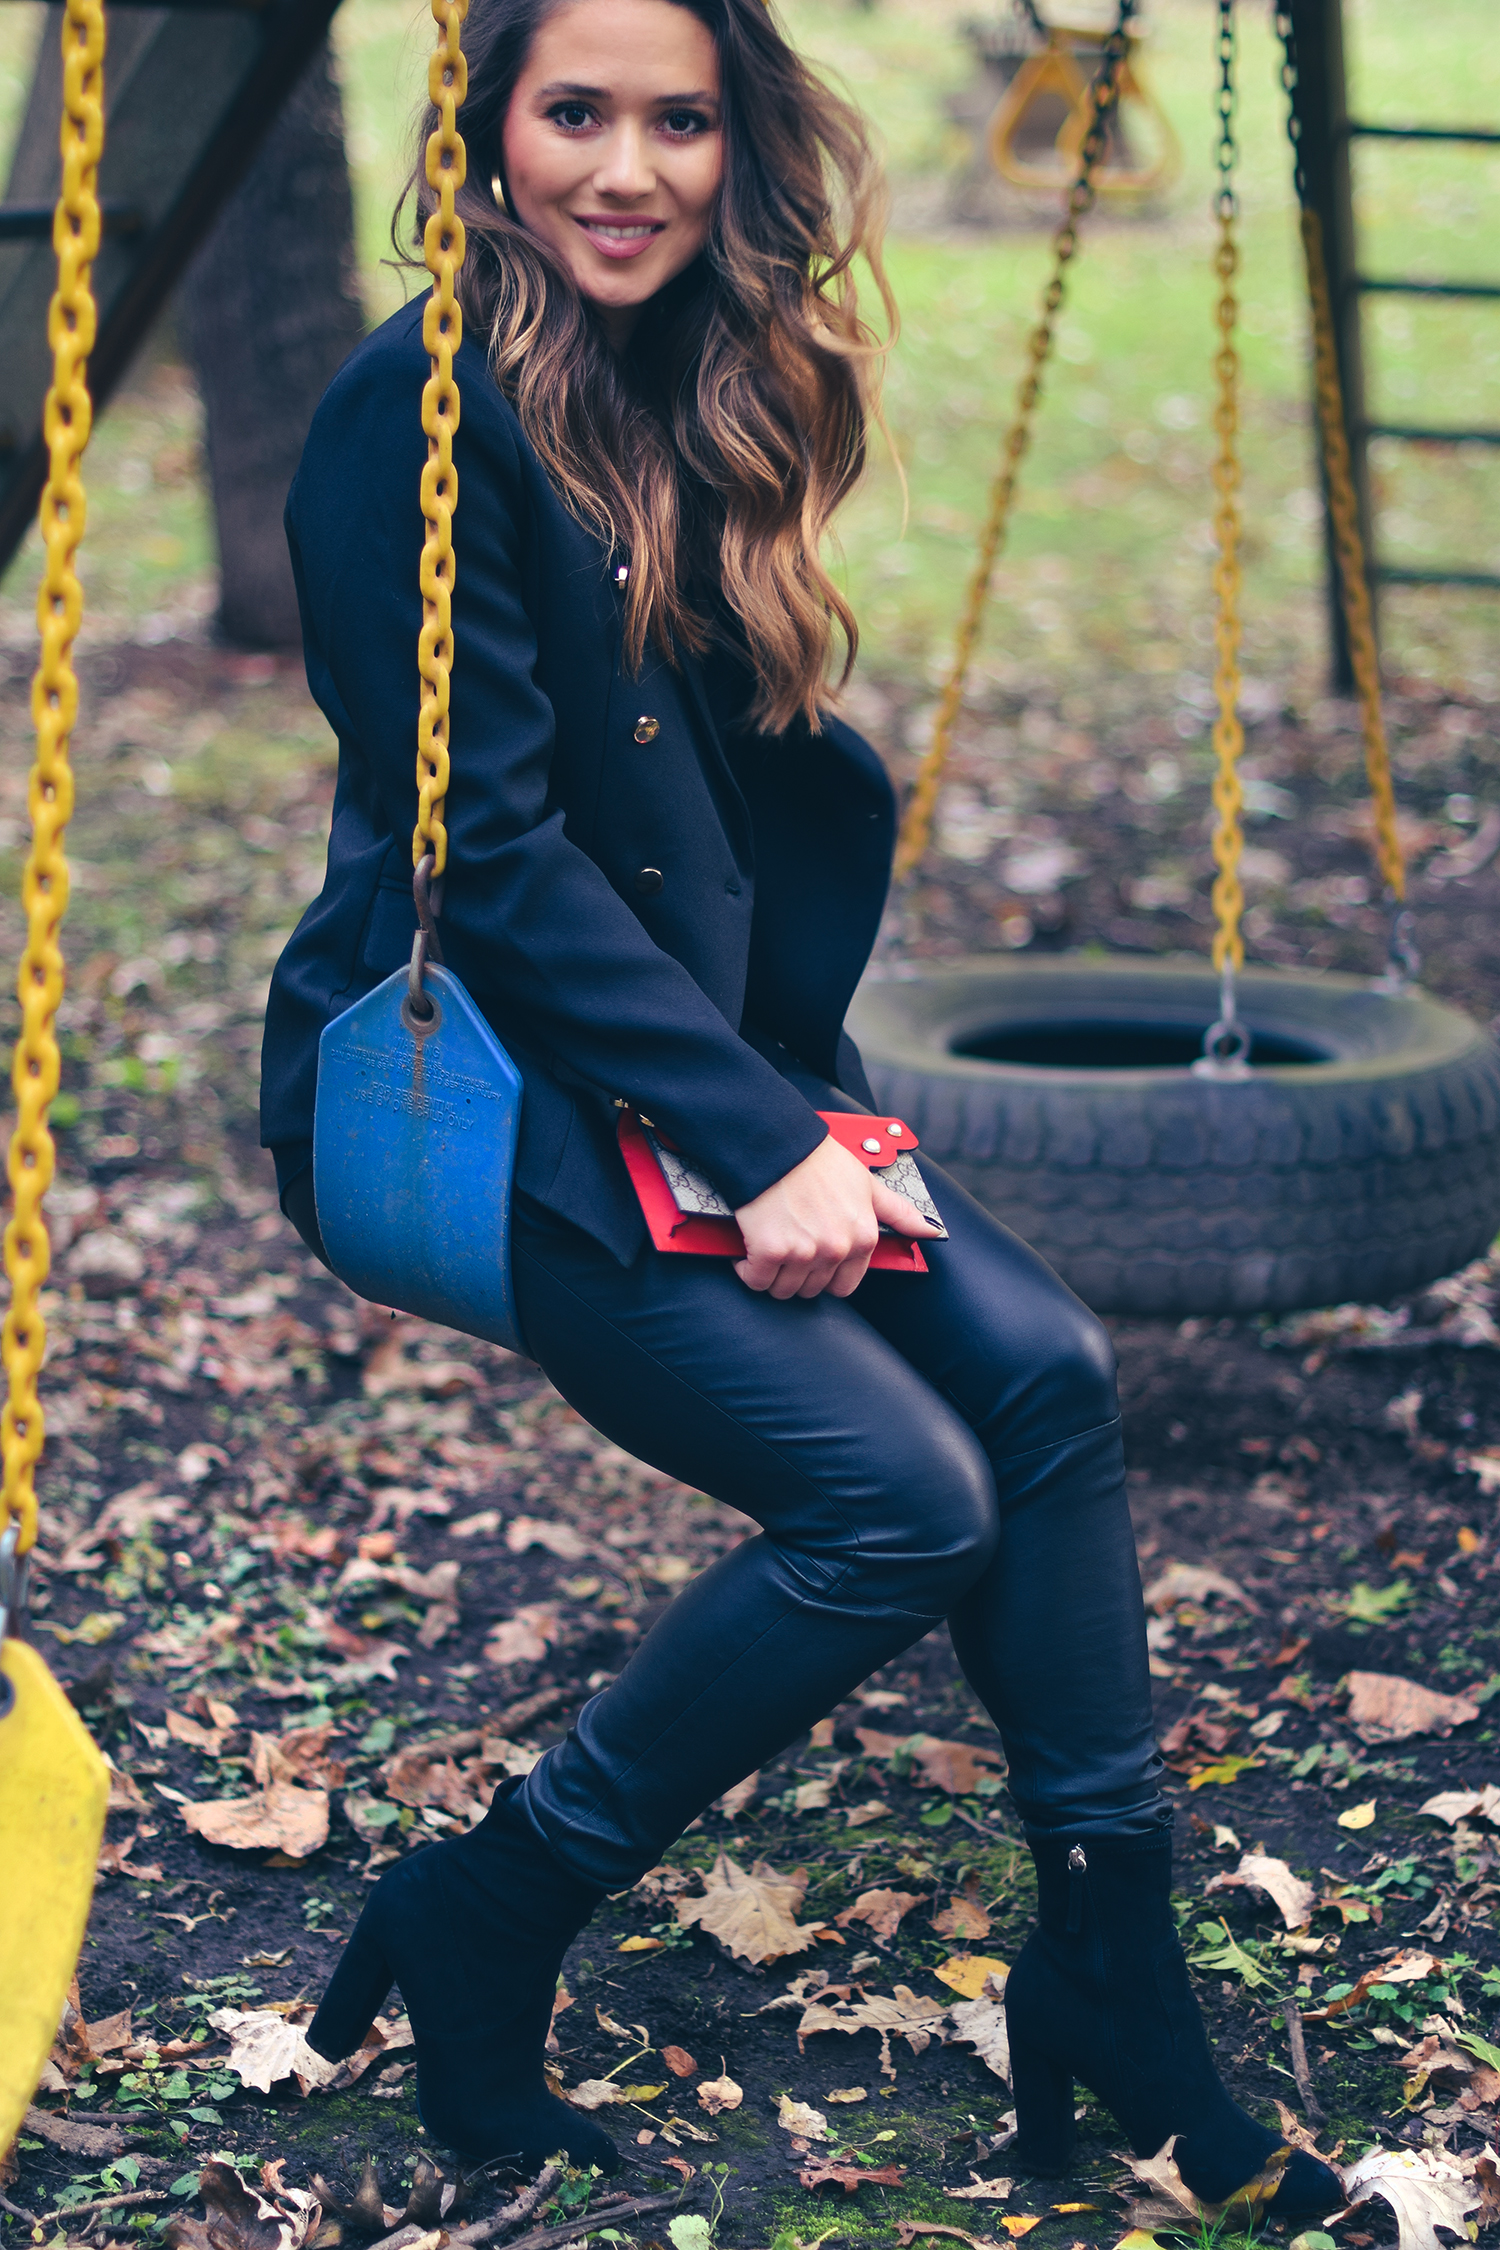 cute-outfit-girl-on-swing